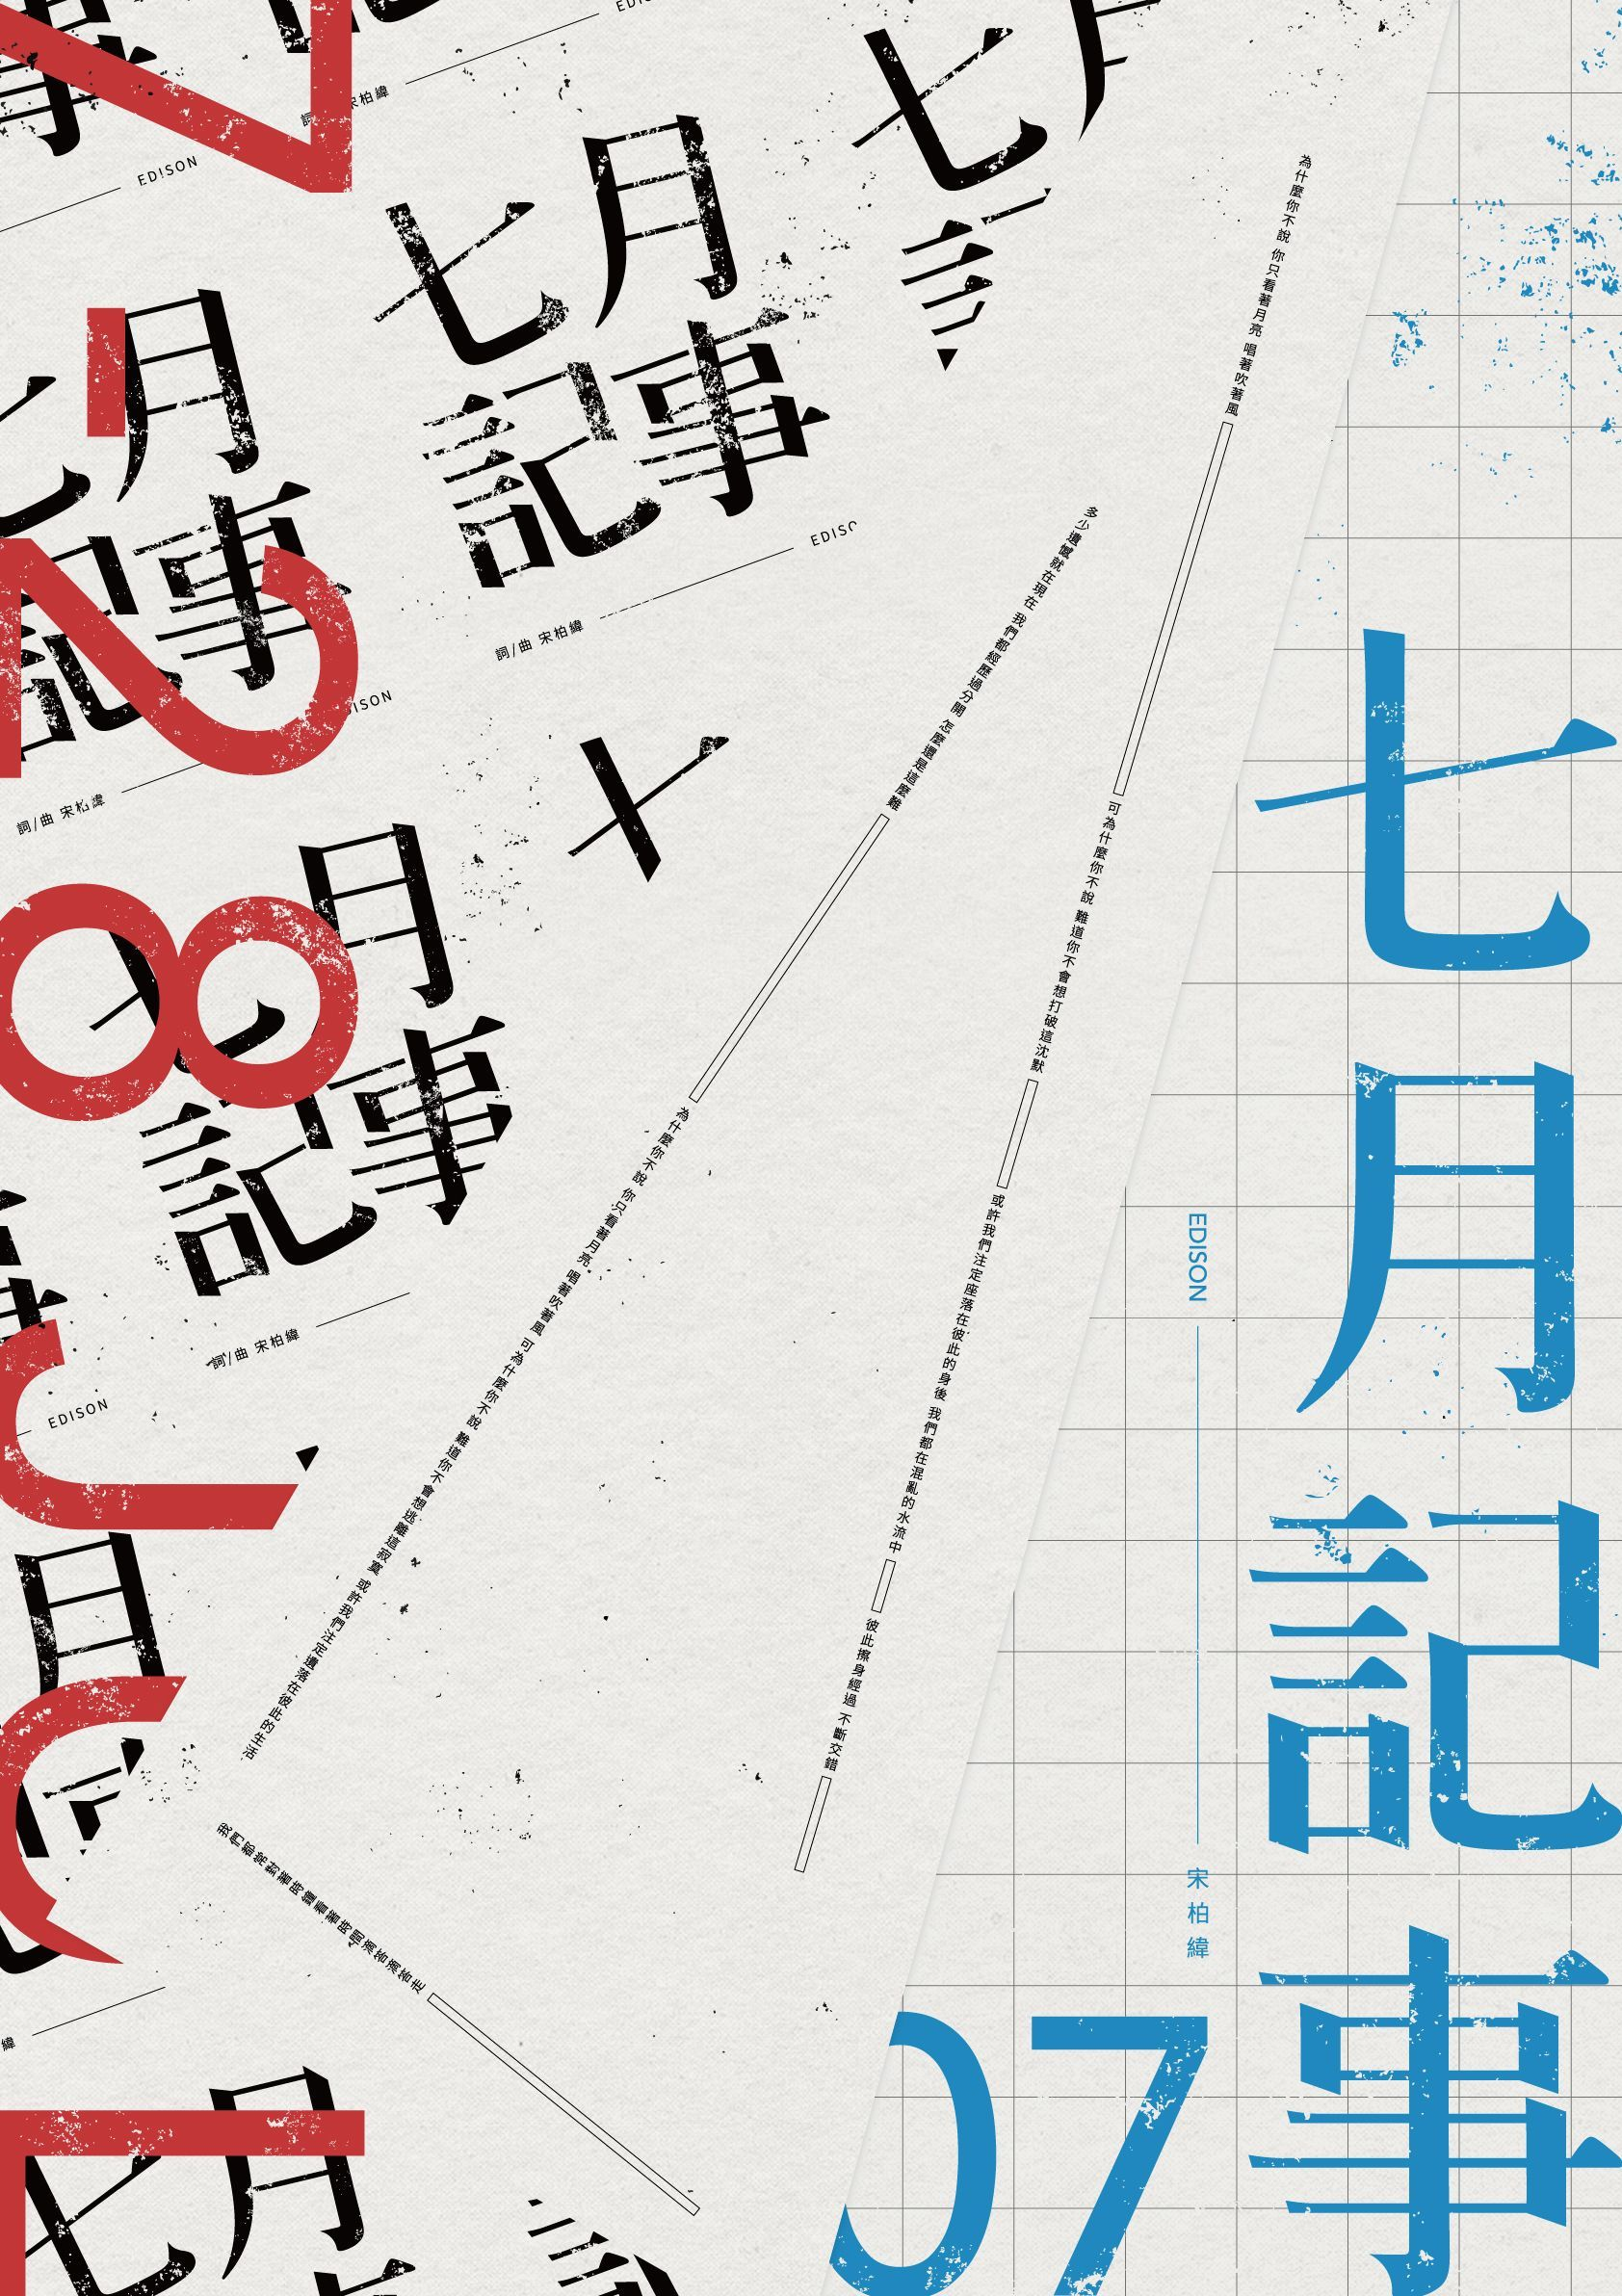 Experimental Chinese Typography - Taiwan Indie Music on Behance #chinesetypography Experimental Chinese Typography - Taiwan Indie Music on Behance #chinesetypography